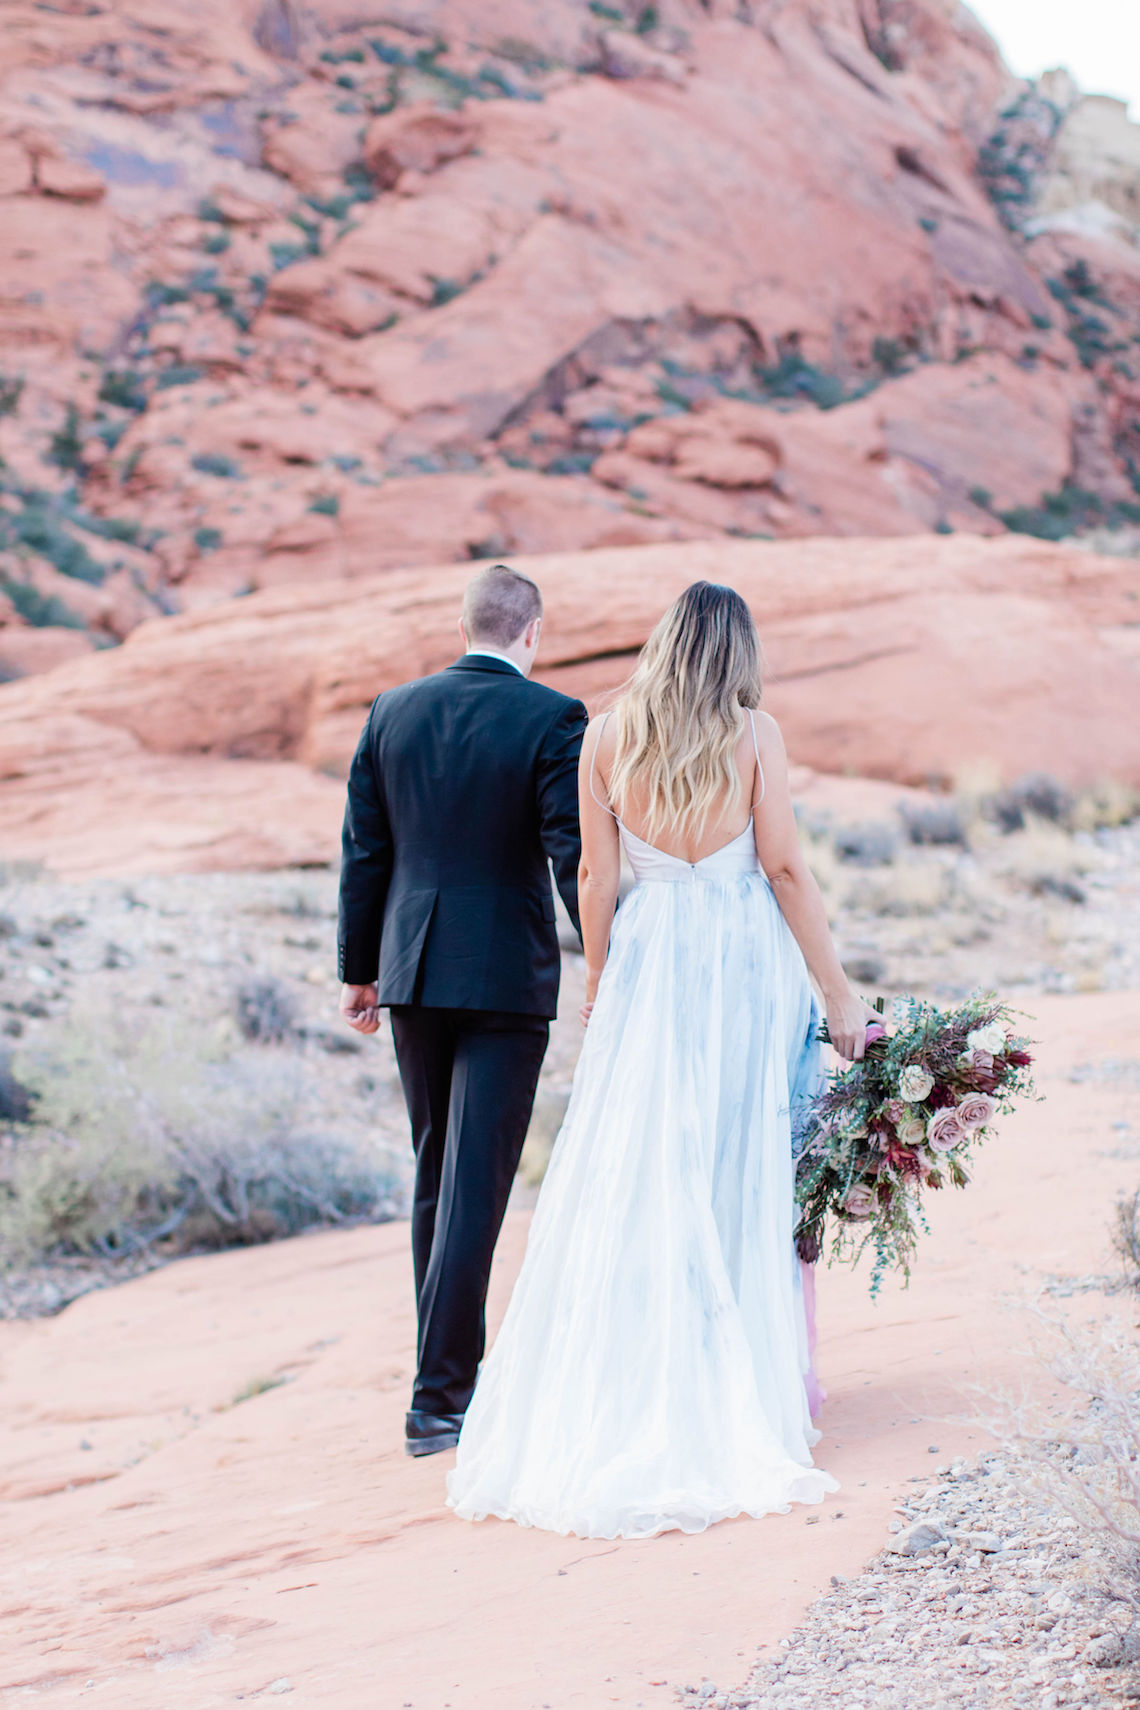 Red Rock Desert Romance With A Whimsical Blue Leanne Marshall Wedding Dress – Elizabeth M Photography 14